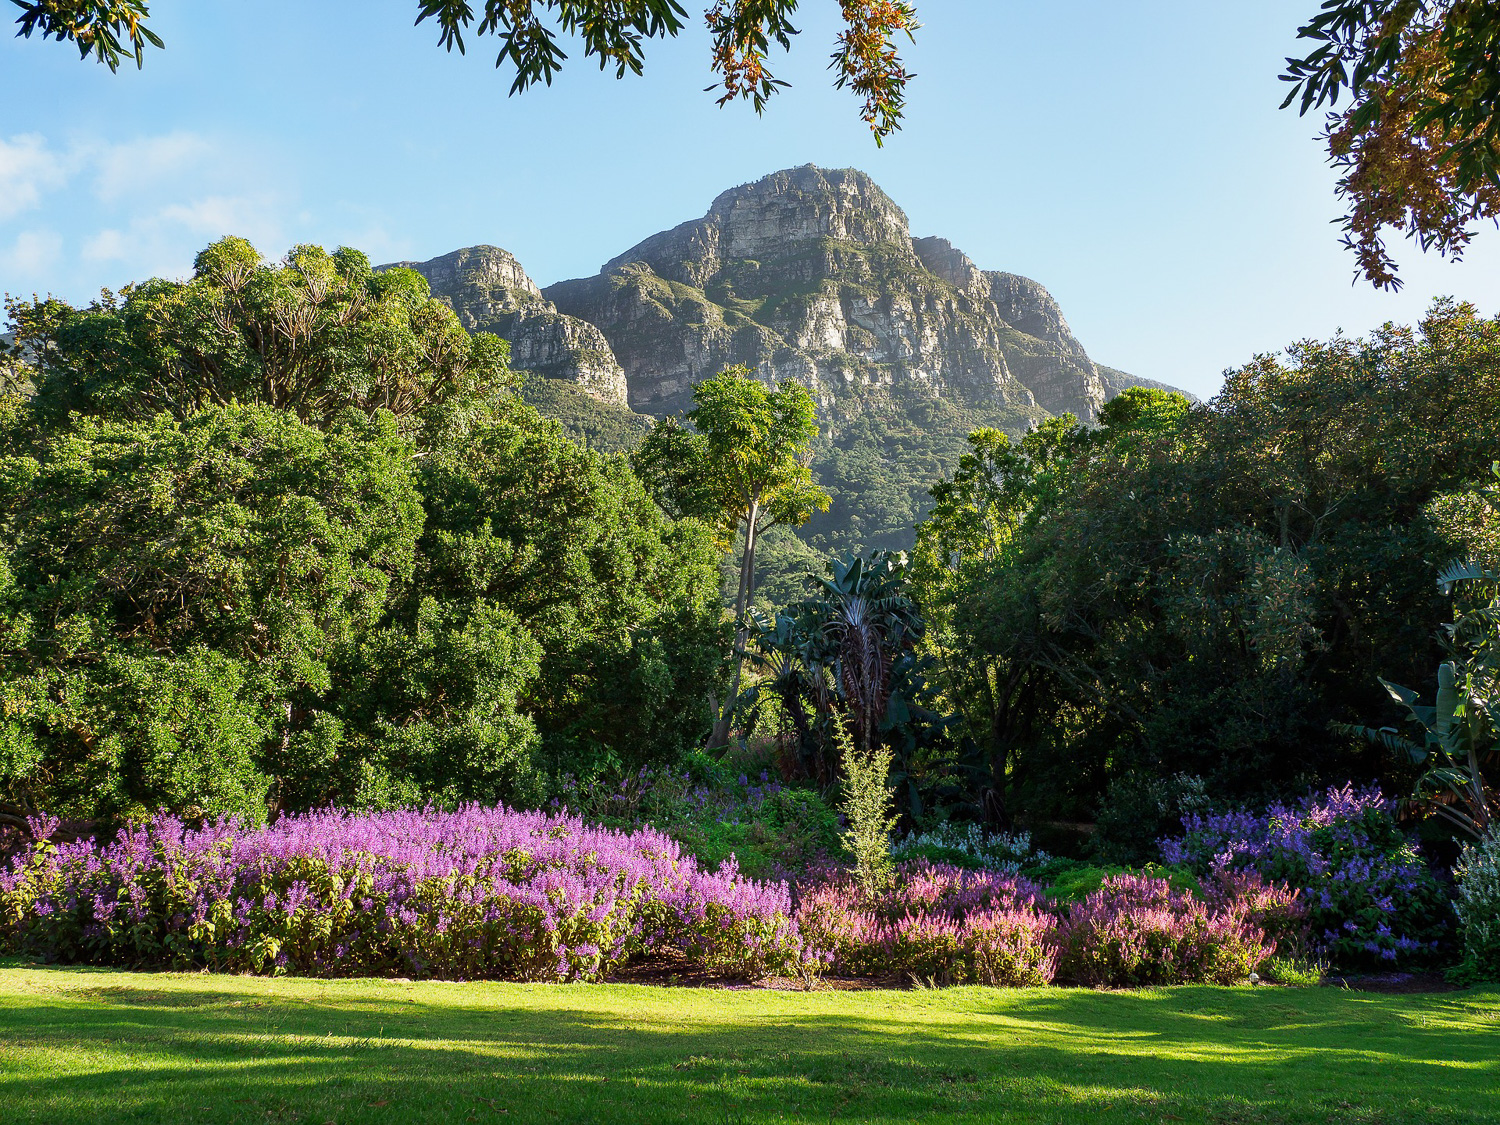 A beautiful oasis awaits at the Kirstenbosch National Botanical Gardens, where the natural flora will stun even the most discriminating of travelers.